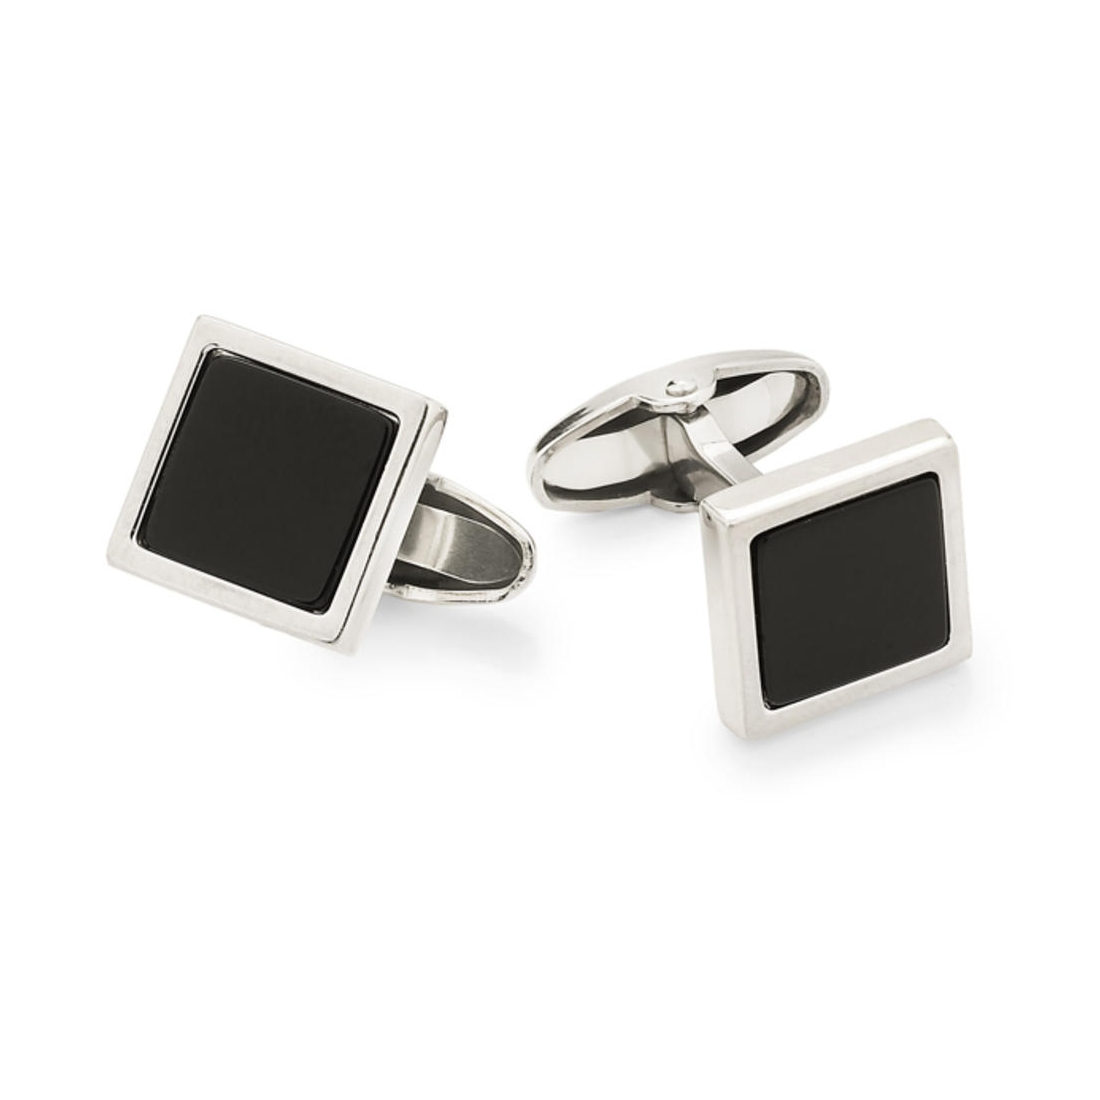 UNOAERRE - 925 Silver Square Cufflinks with Black Onyx